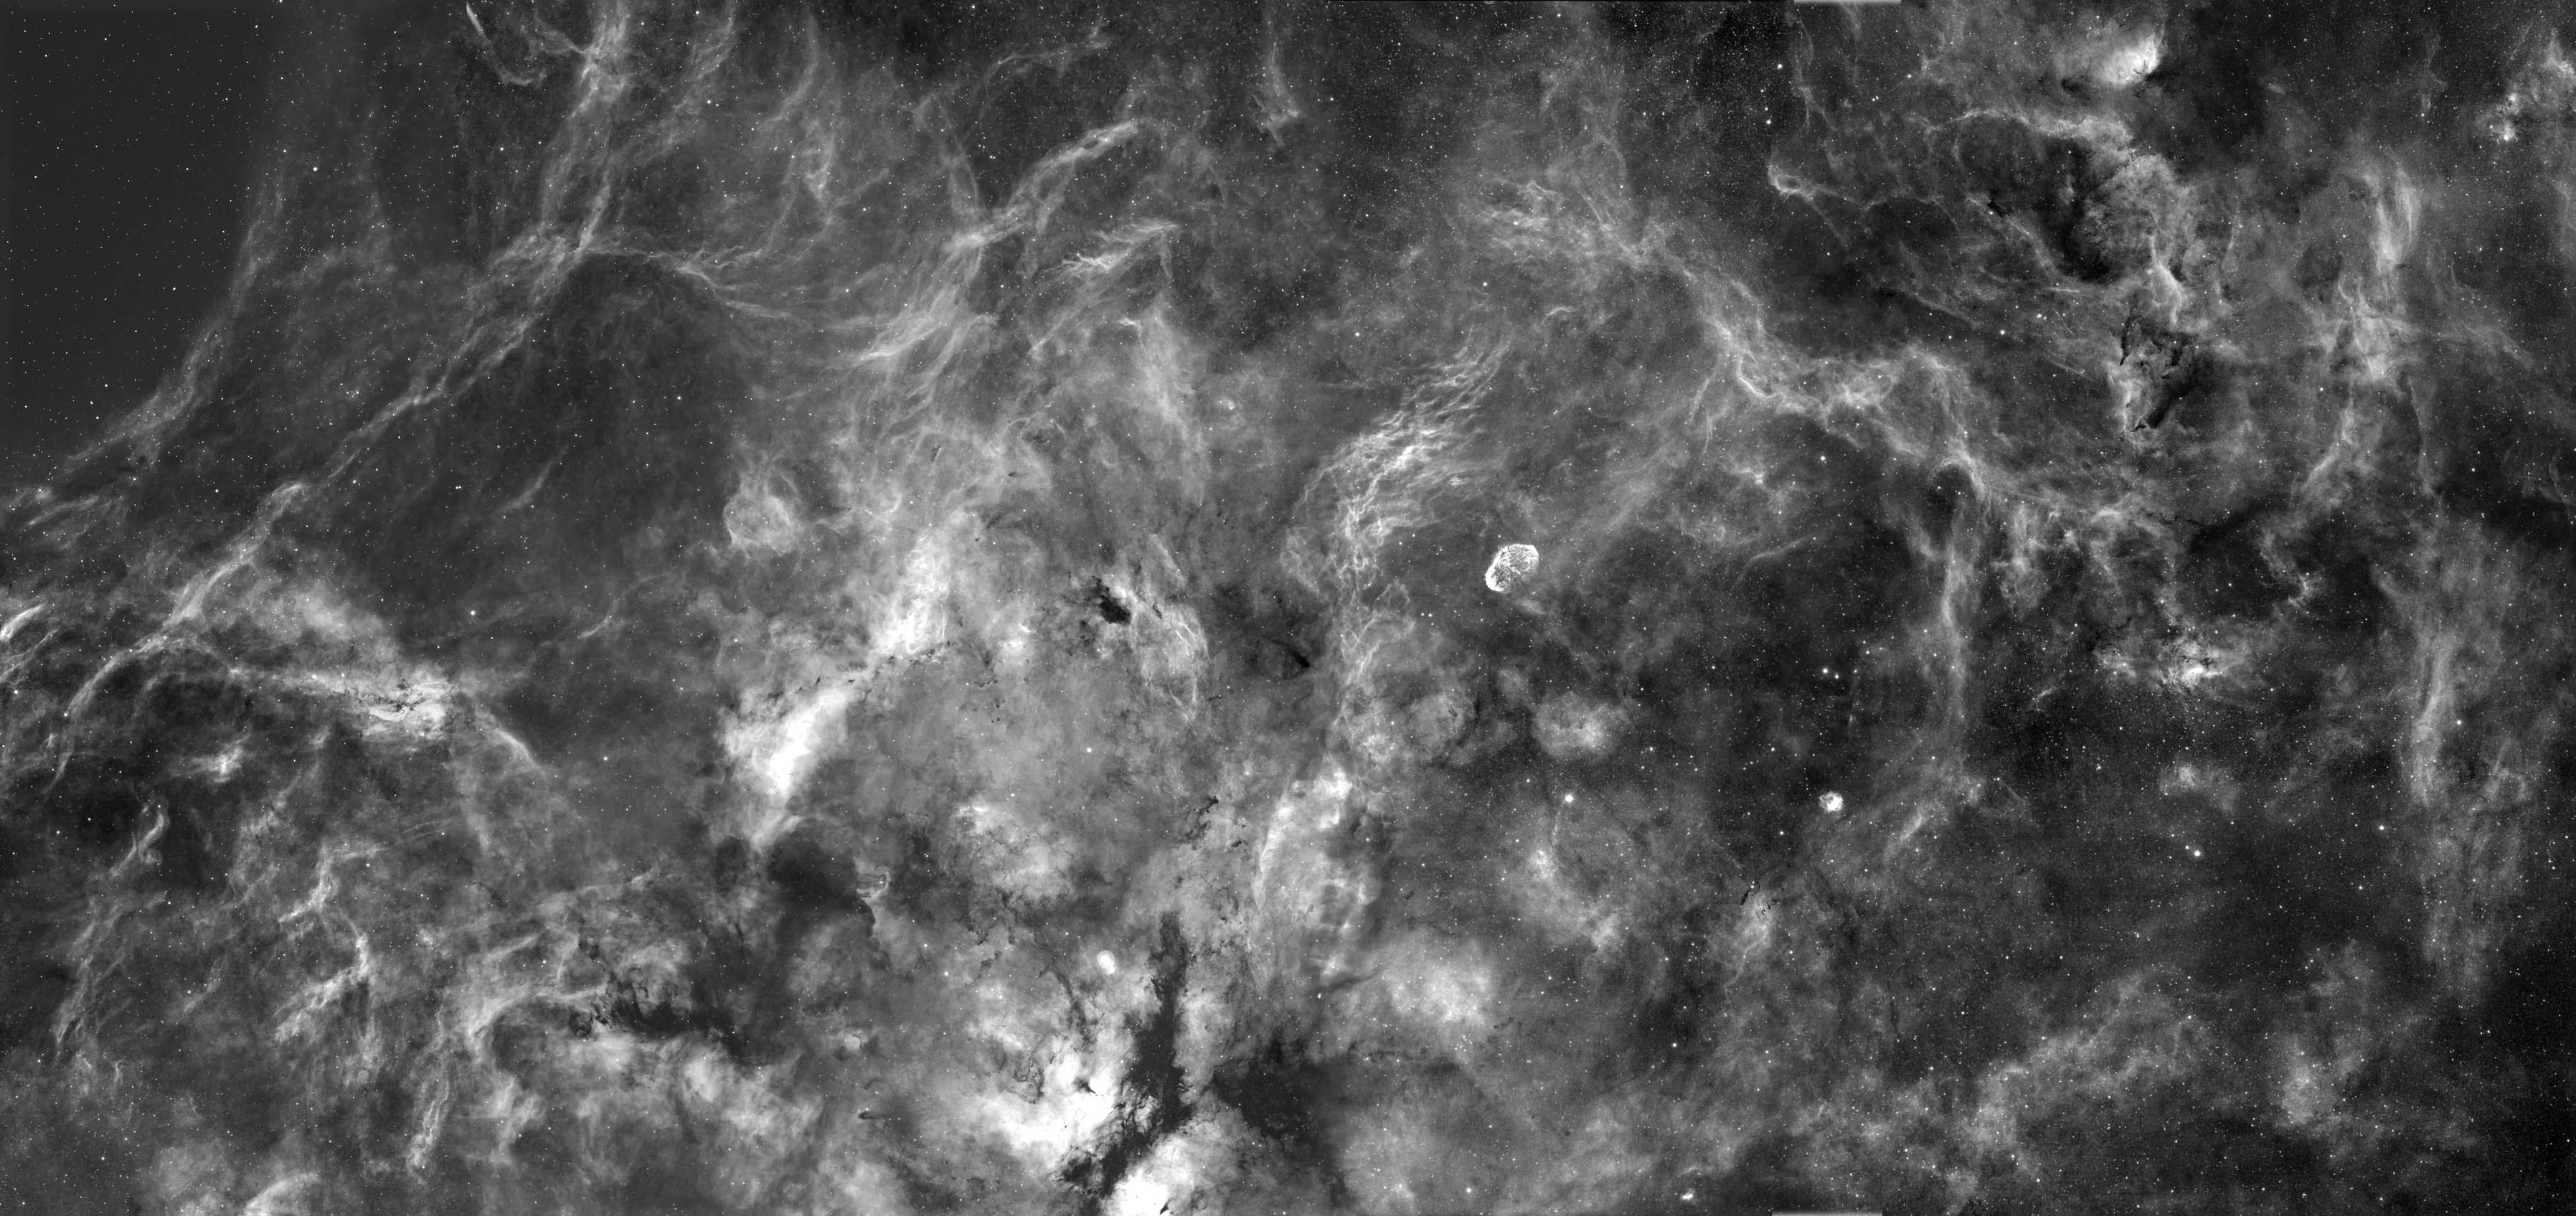 12 Panel Mosaic of Cygnus Region